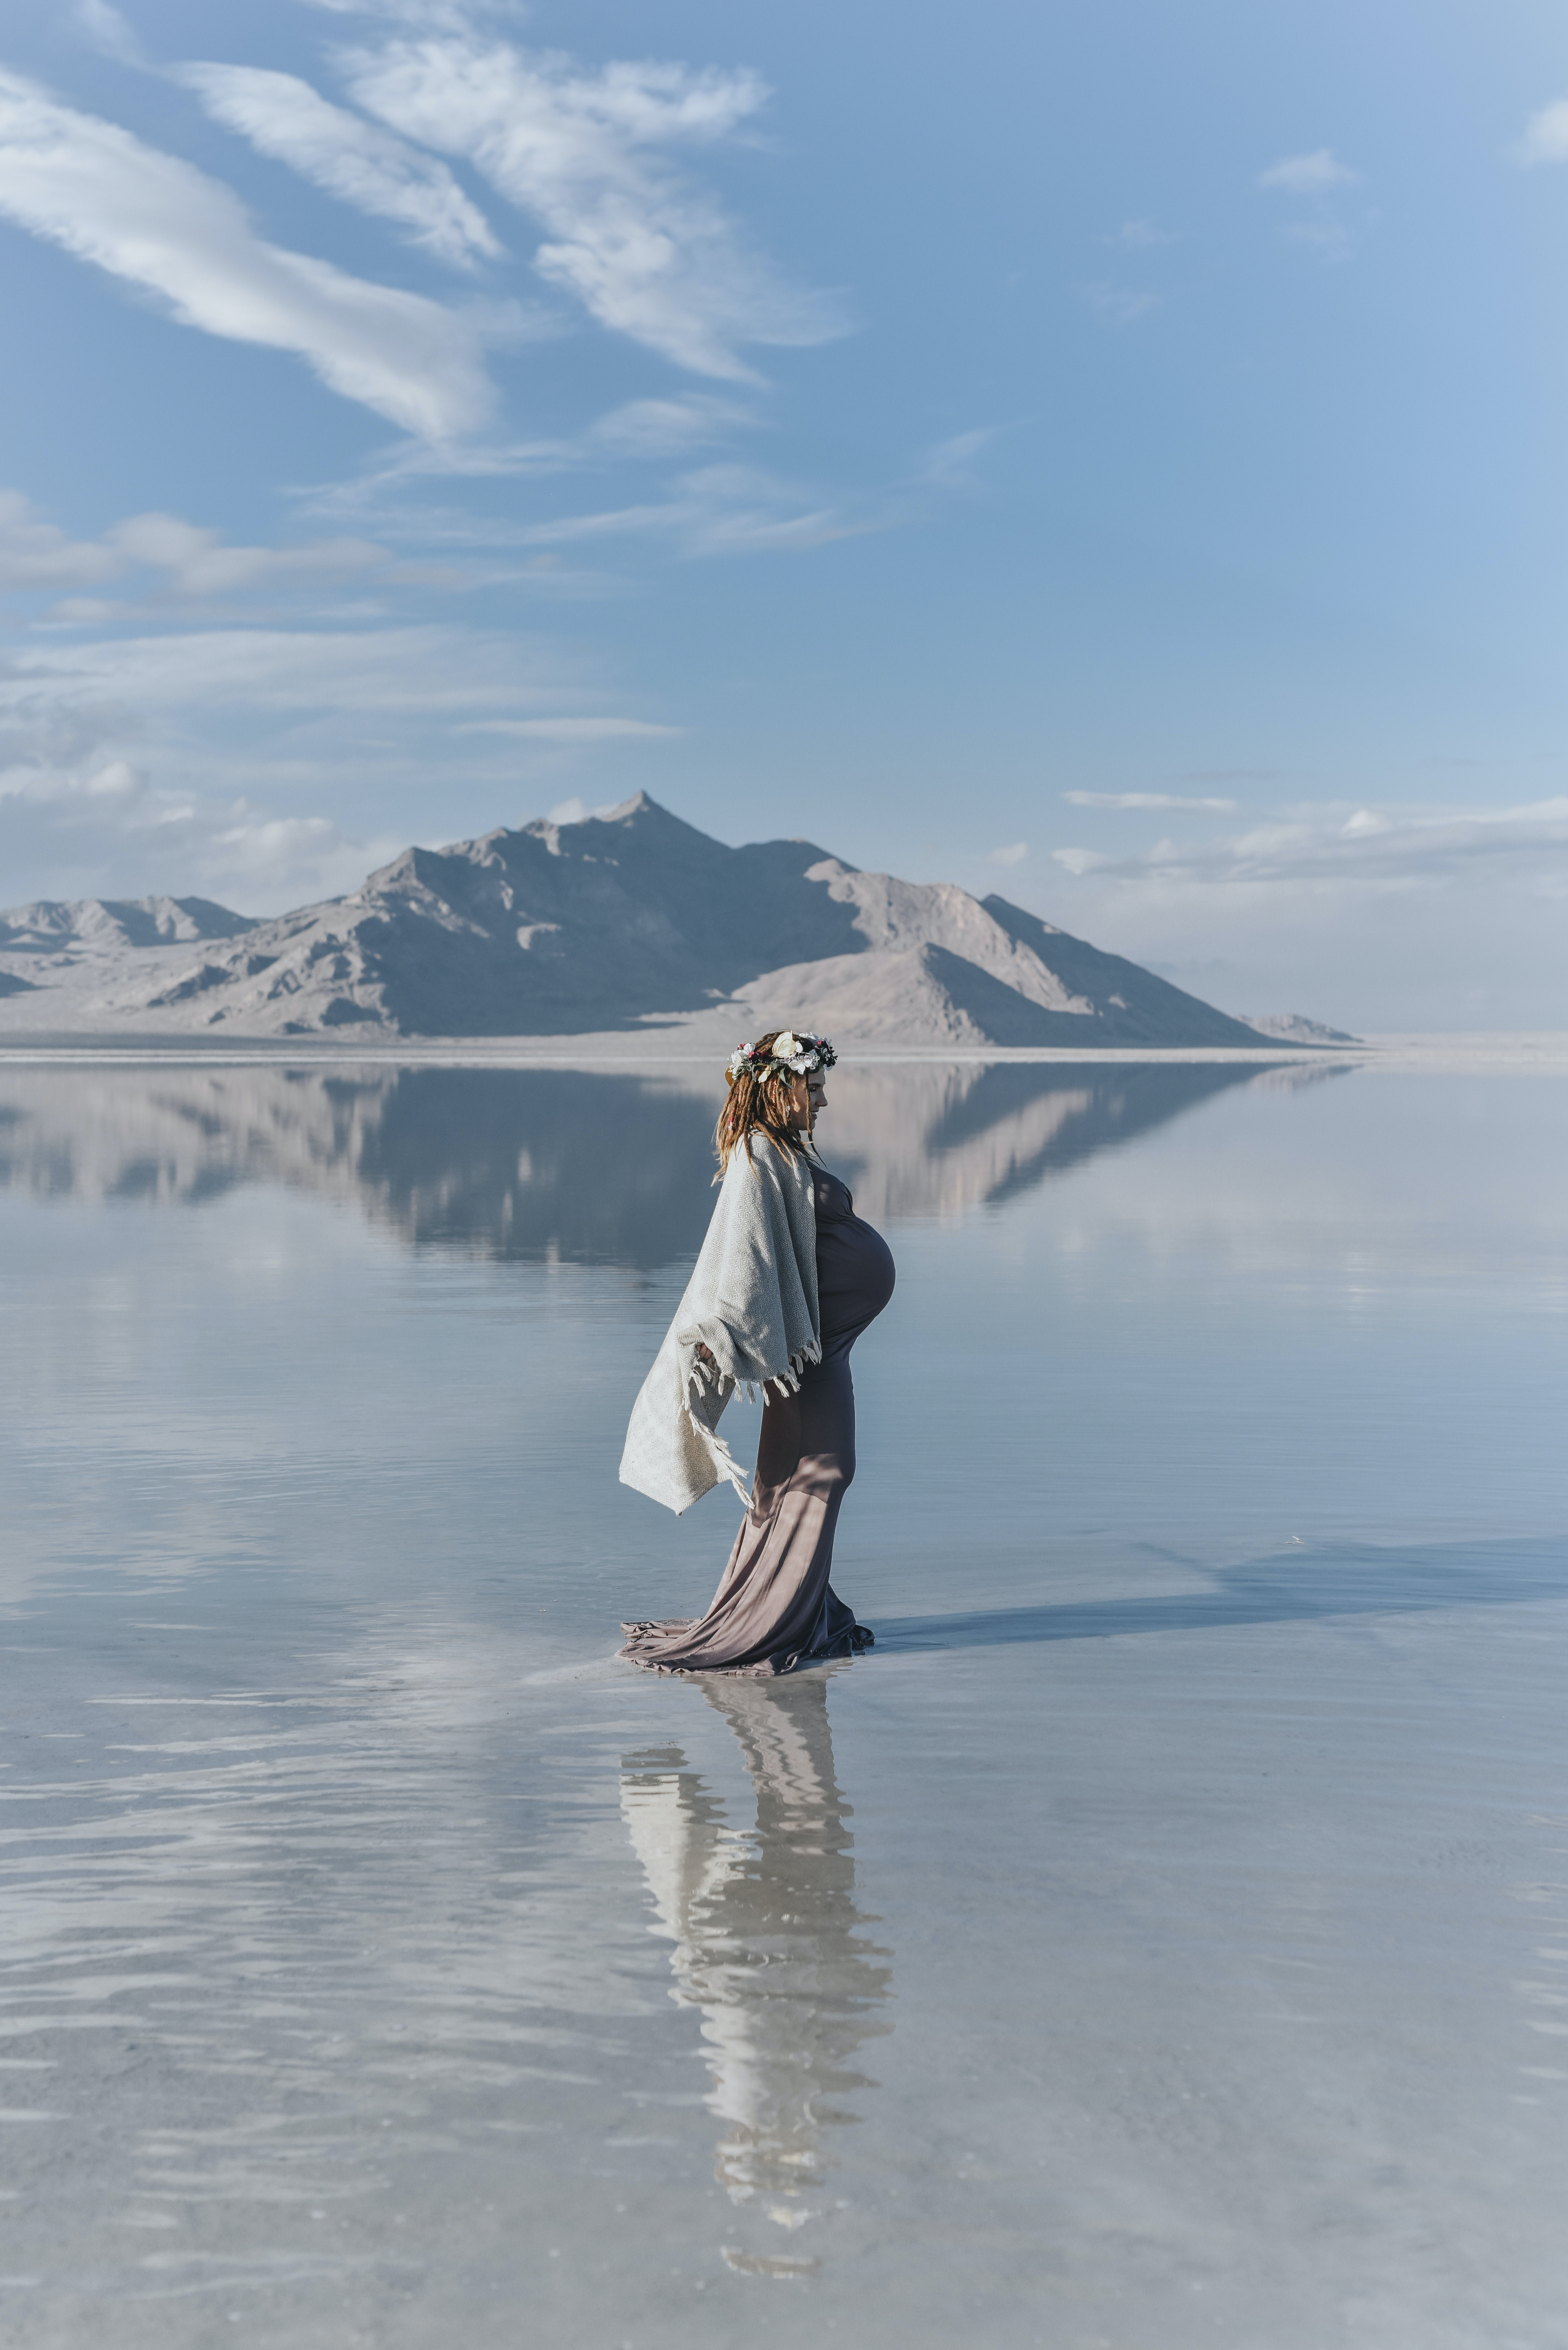 pregnant woman standing on body of water